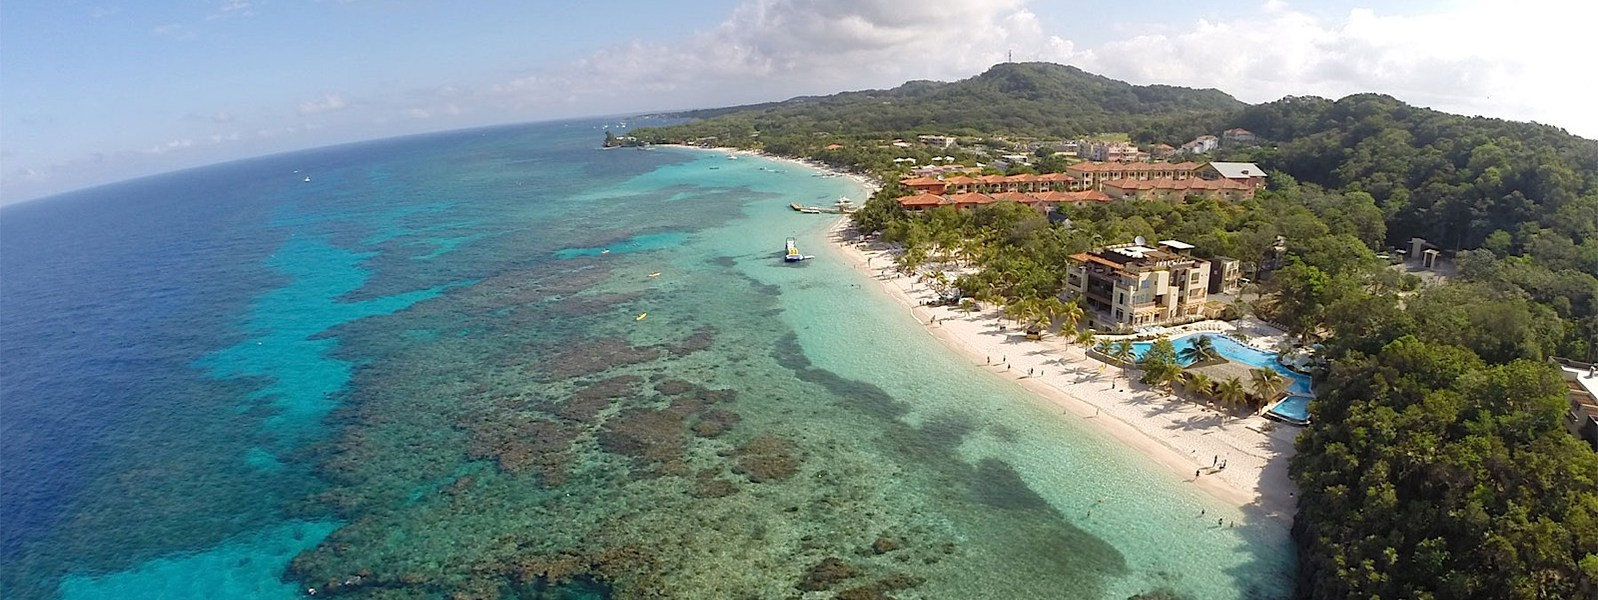 ROATAN HONDURAS VACATION via Swirl Nation Blog